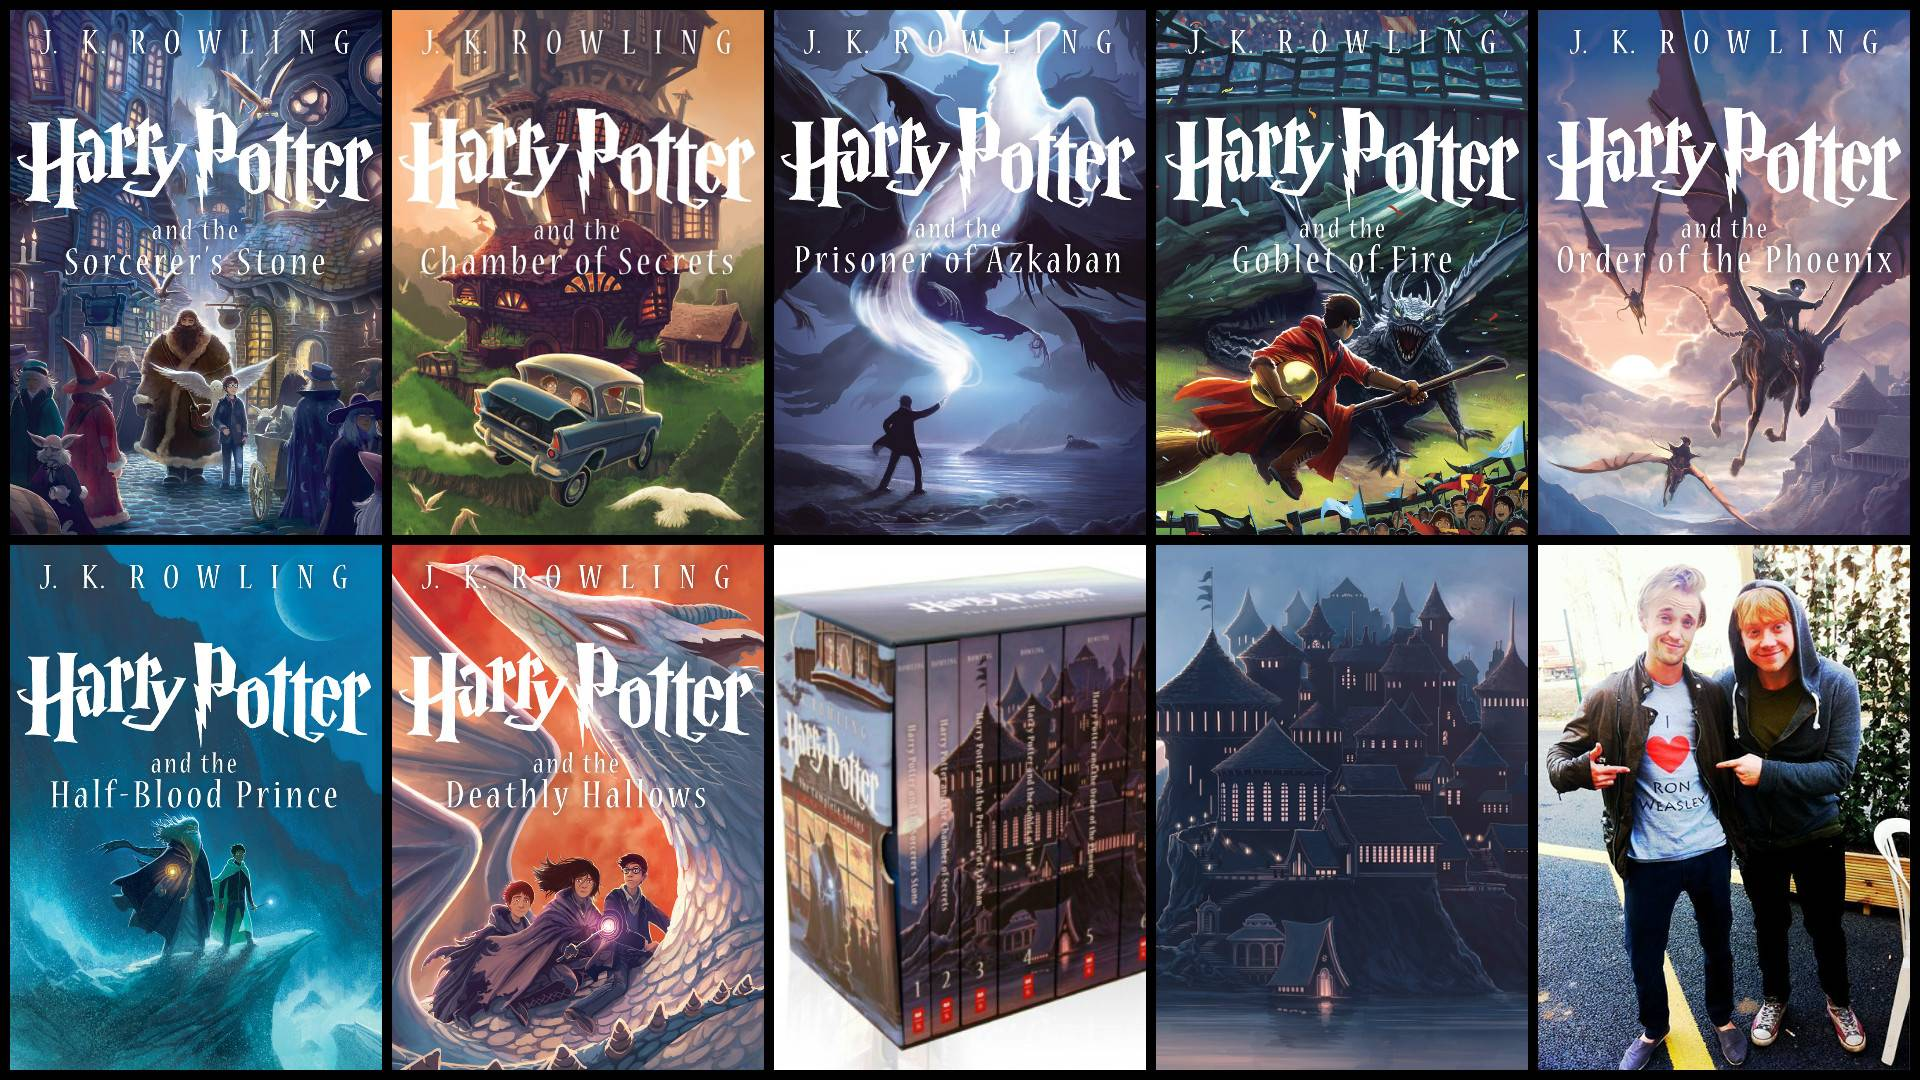 Wallpapers made from the new book covers! : harrypotter